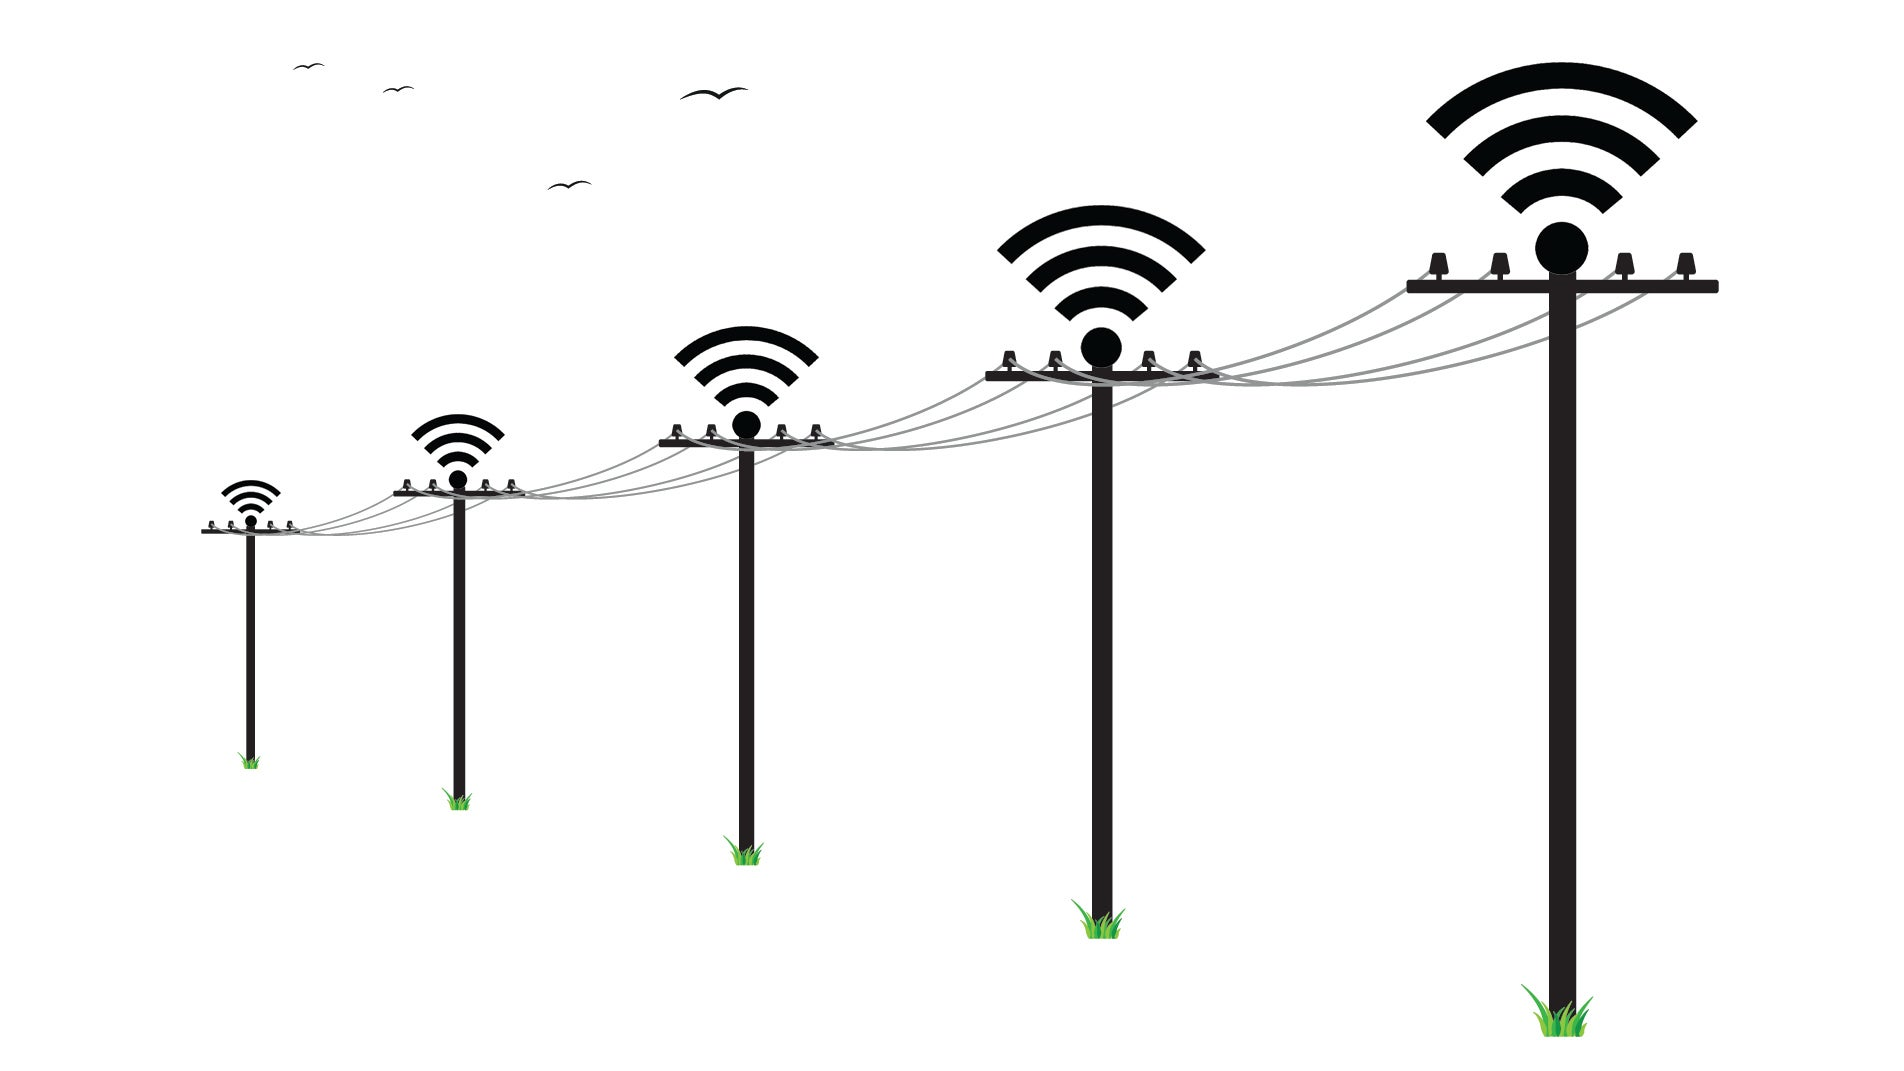 The New Wifi Will Reach Twice as Far